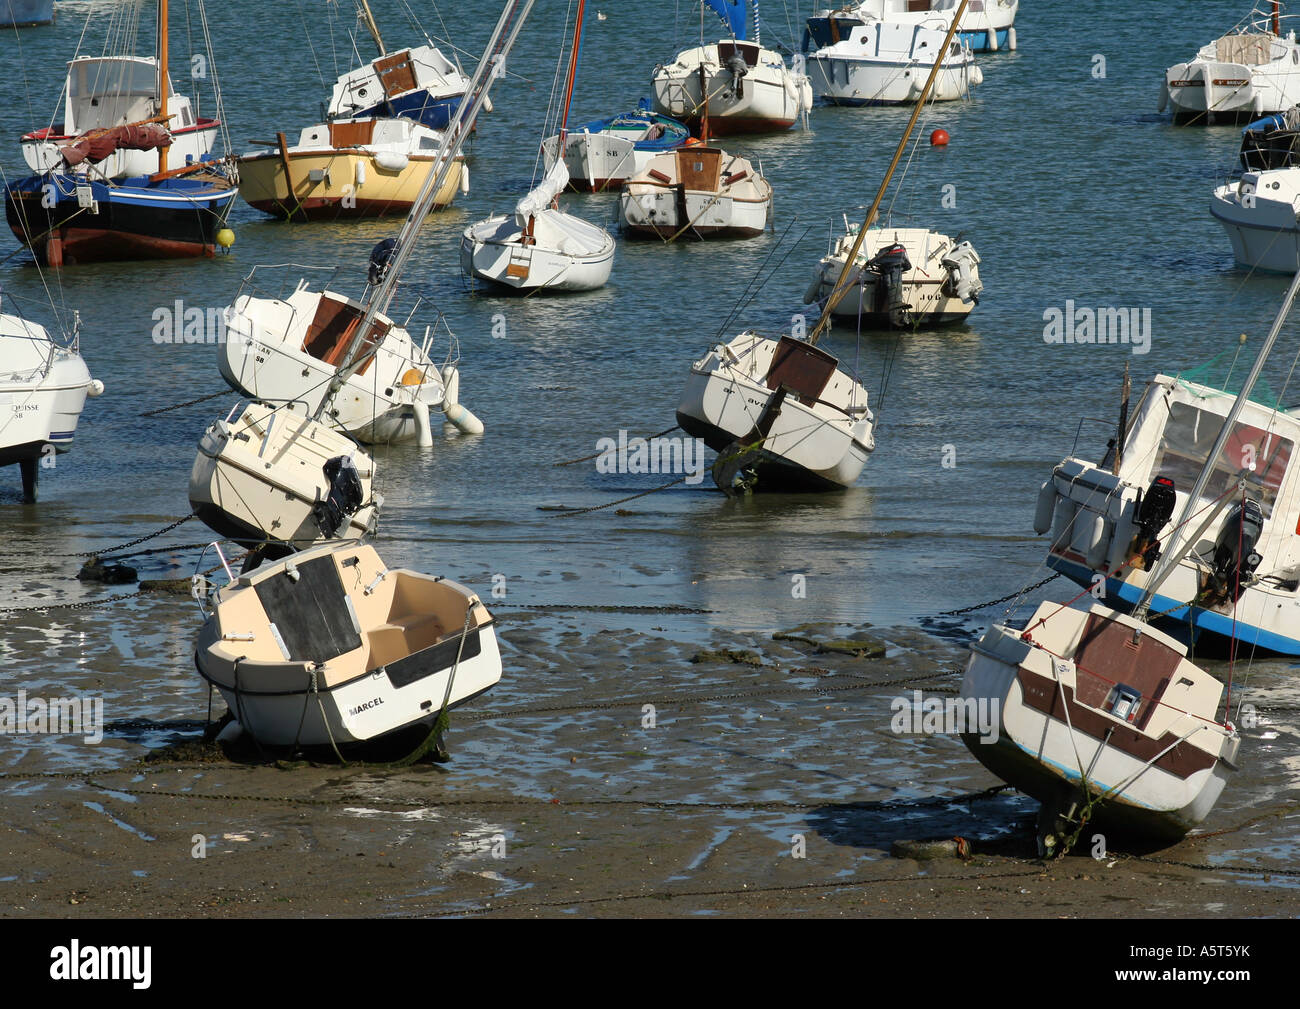 Boats at low tide - Stock Image